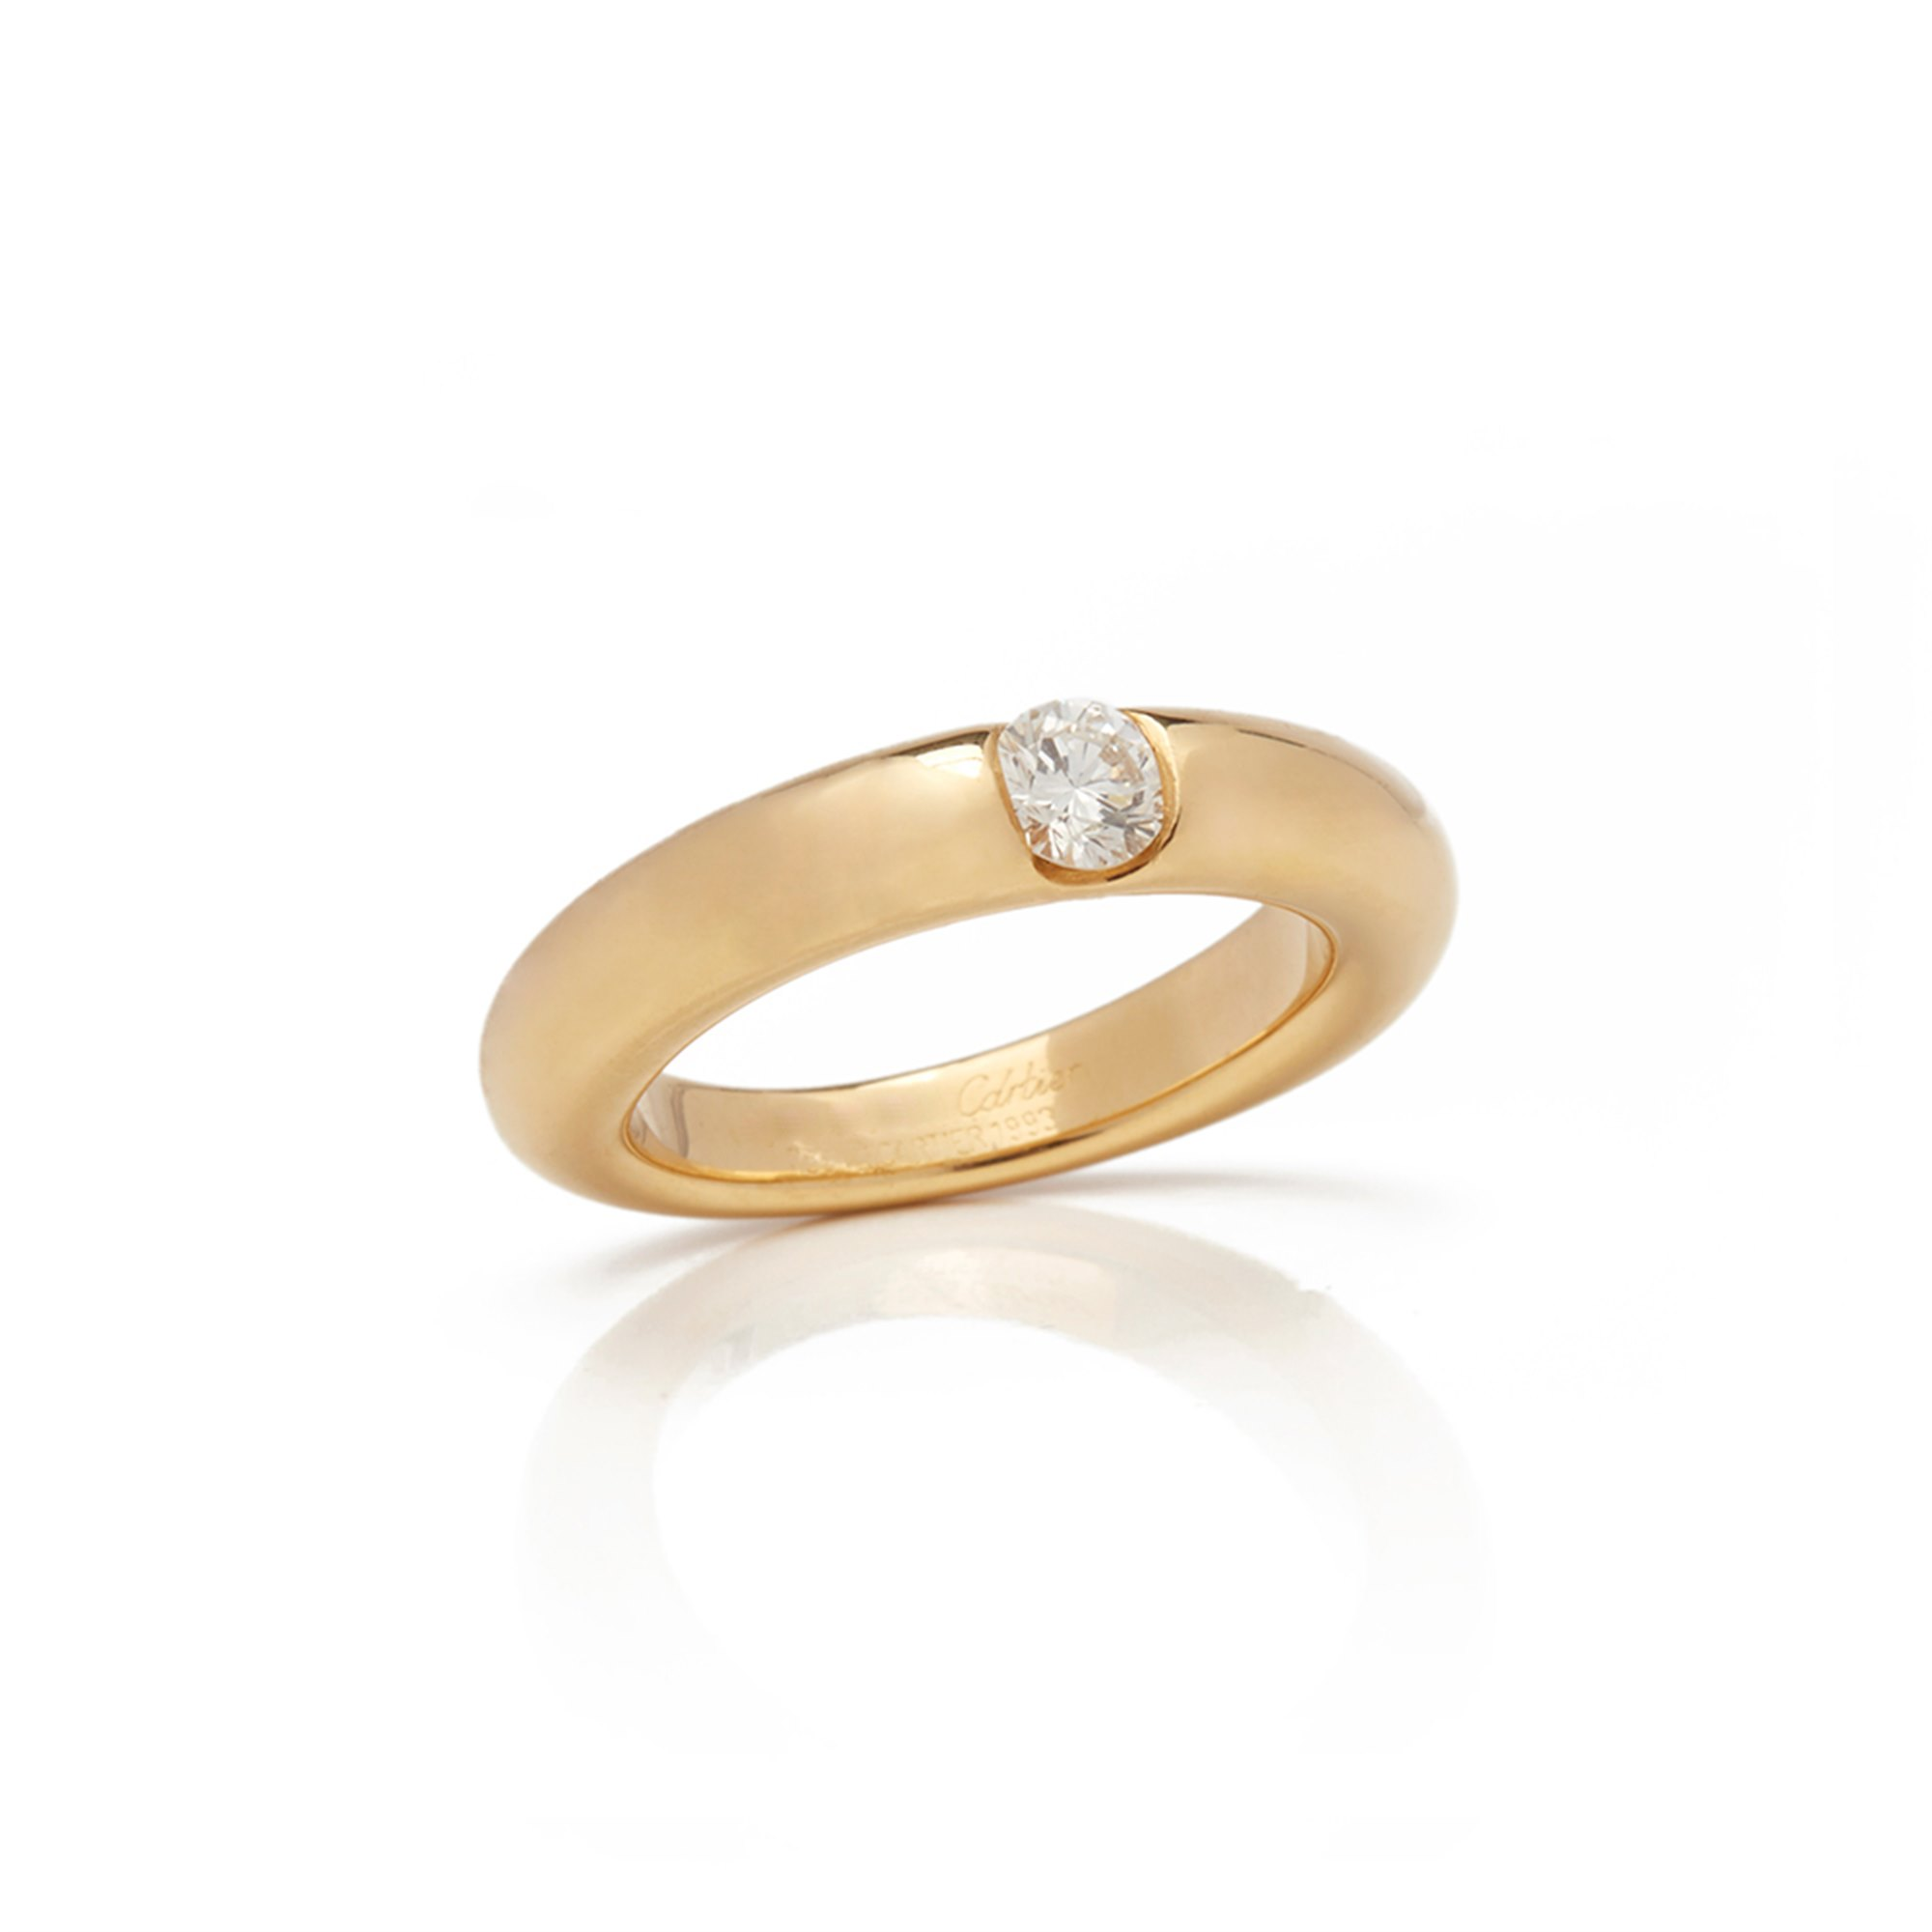 Cartier 18k Yellow Gold Solitaire 0.25ct Diamond Ellipse Ring